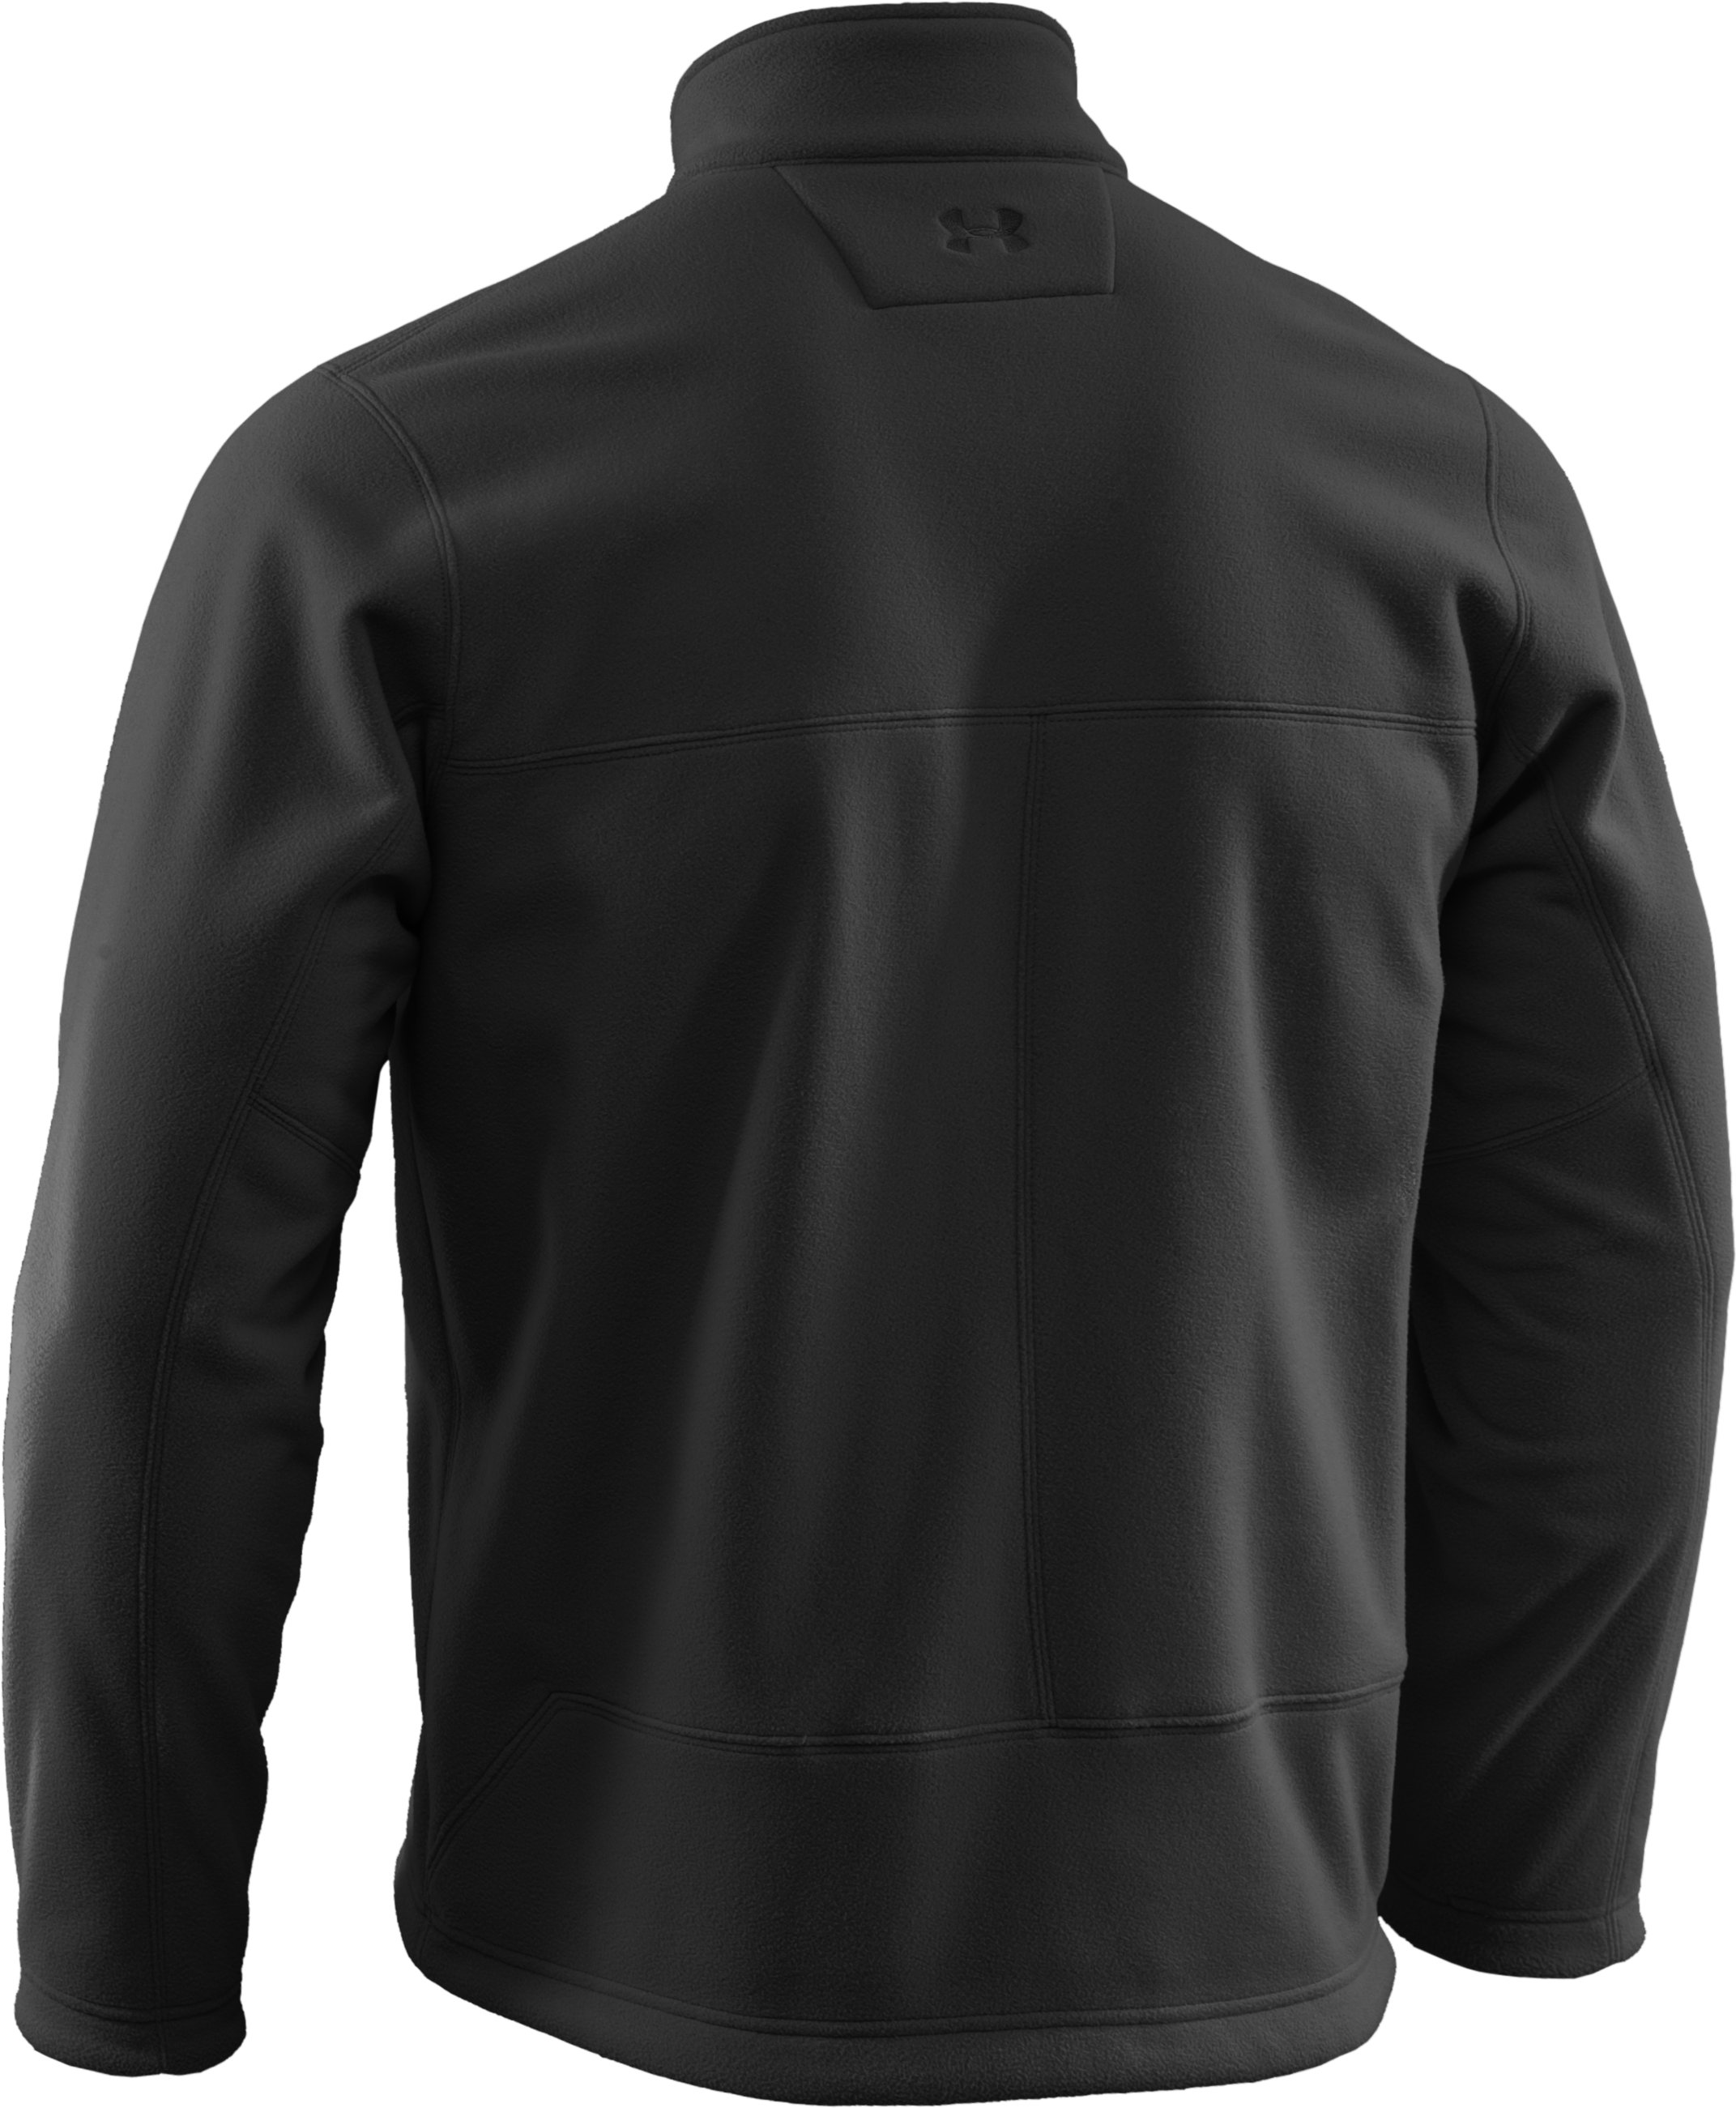 Men's Tactical Windproof Fleece Jacket, Black , undefined